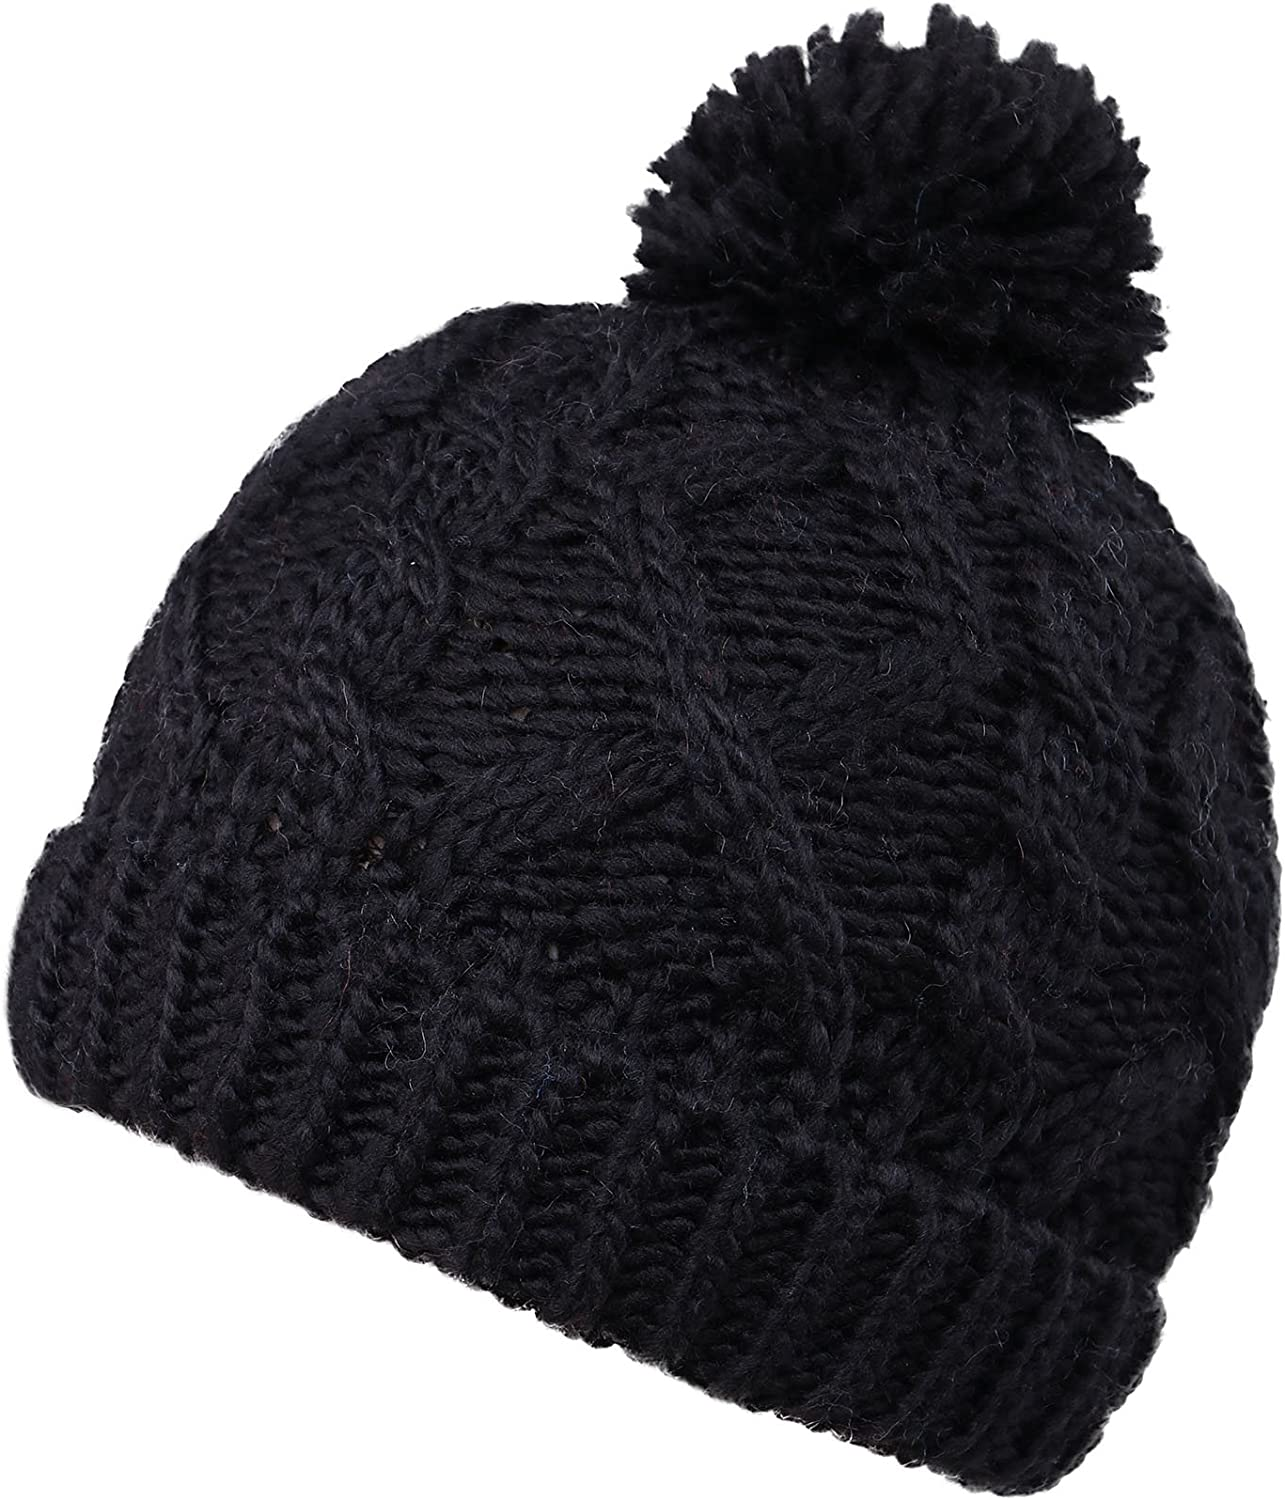 TOPMAN Kid/'s Navy Blue Solid Knitted Winter Pom Pom Cap 56D54C One Size NEW $24